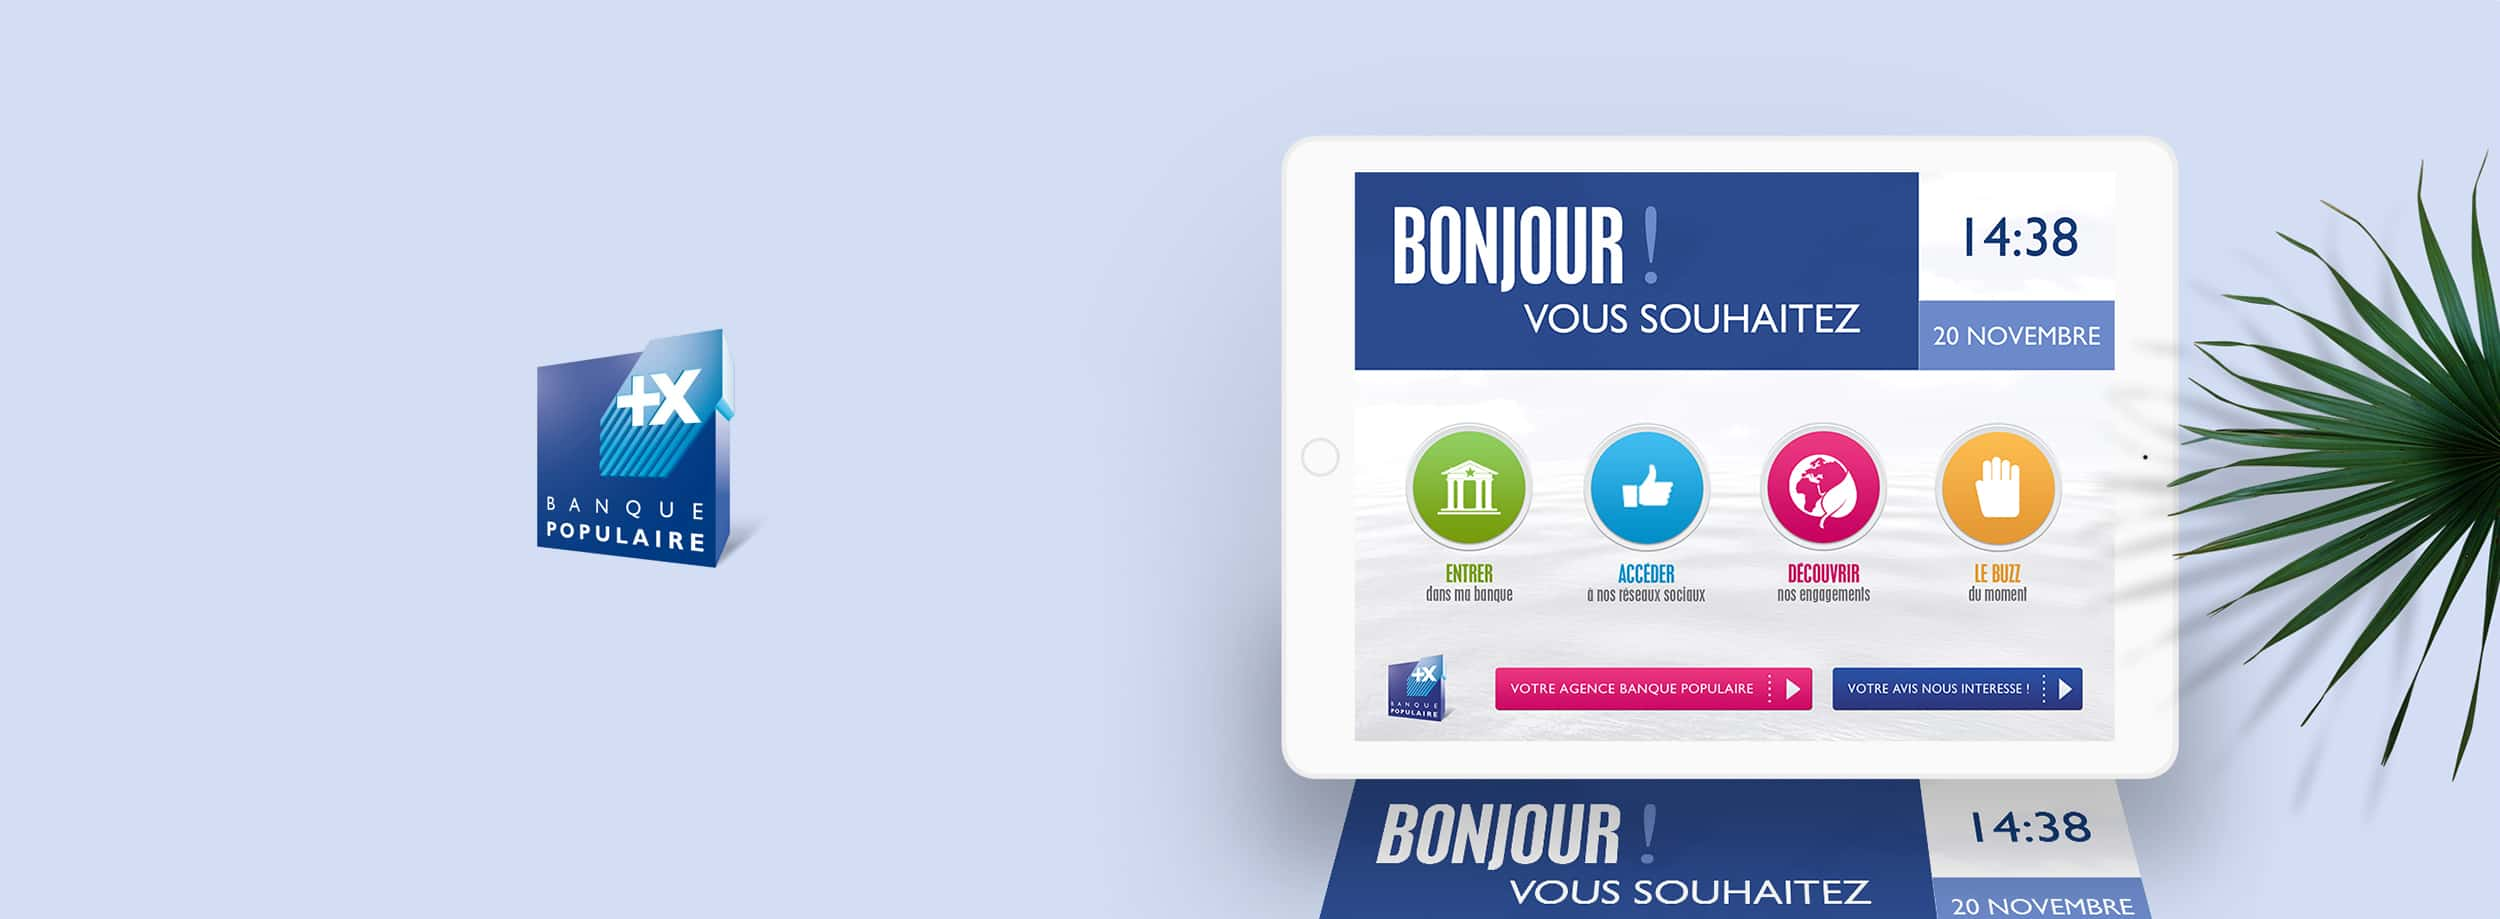 Application Banque Populaire Grand Ouest